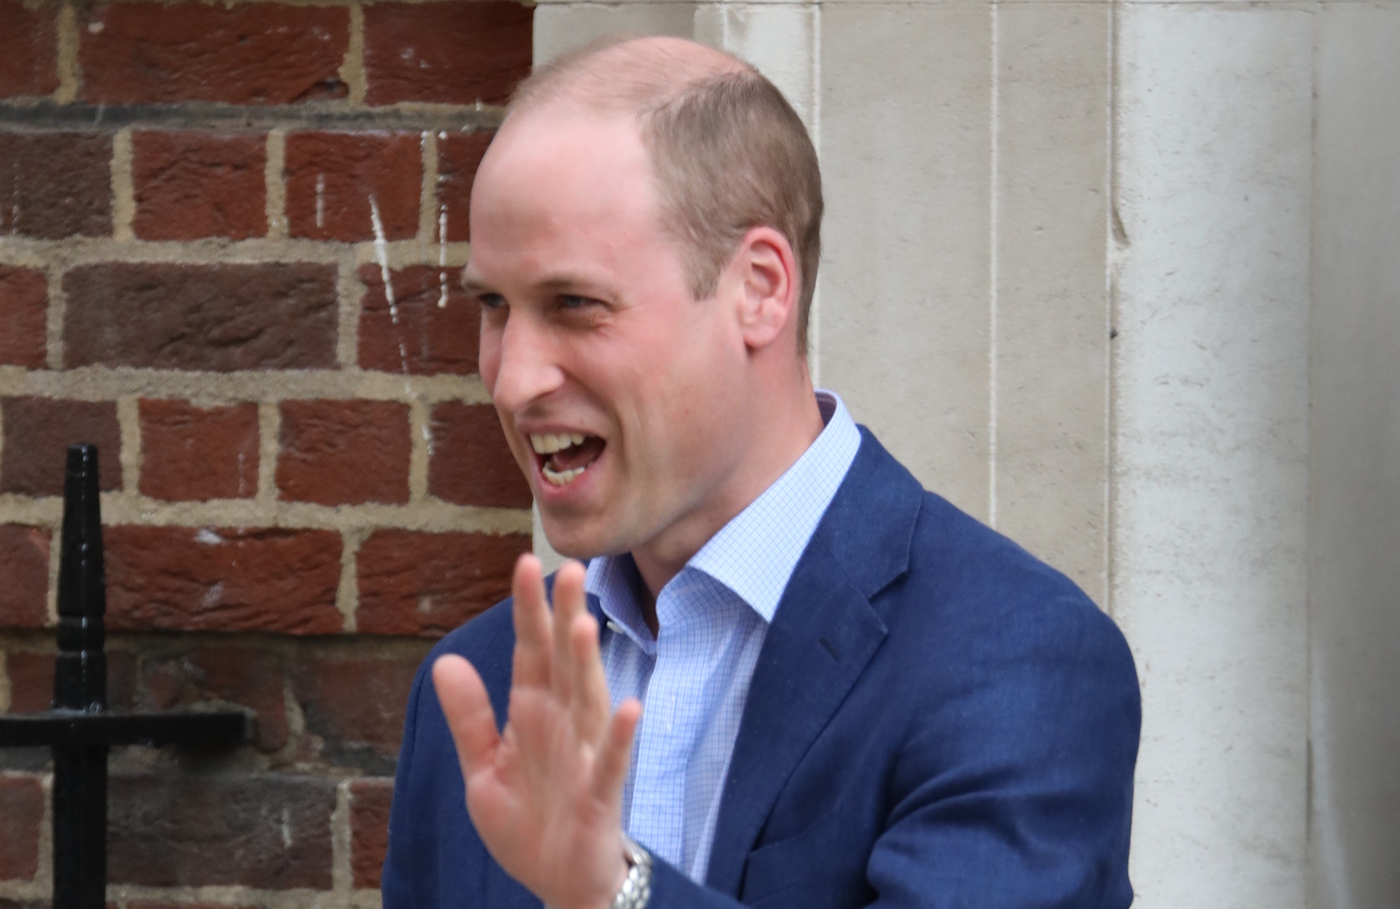 Prince William brings George and Charlotte to meet new royal baby